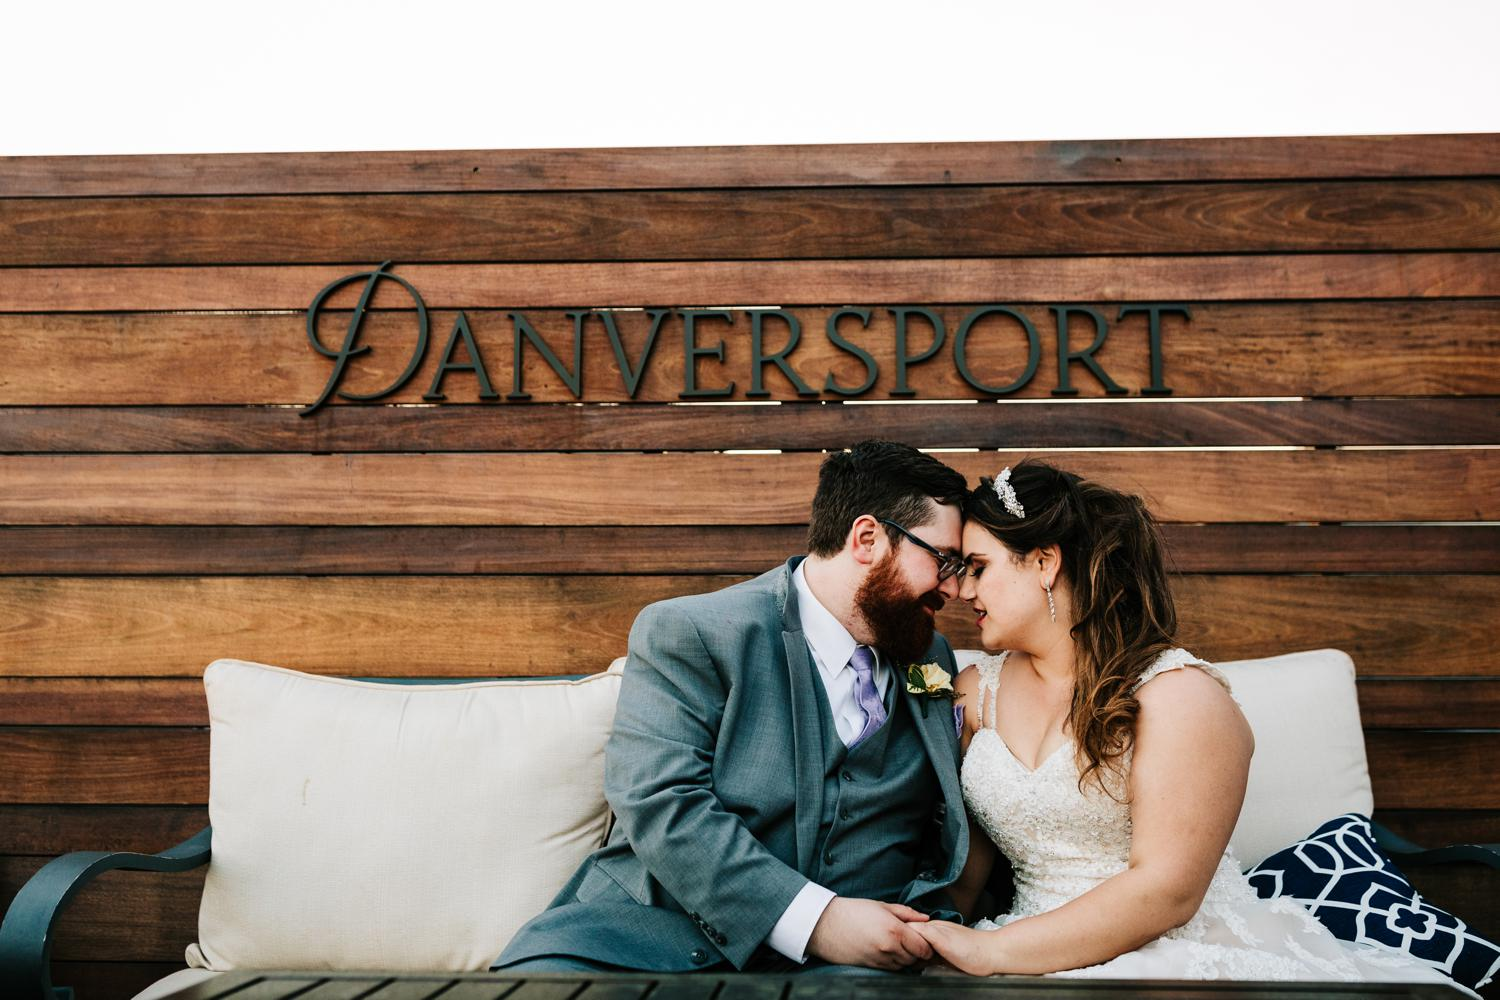 18. danversport-yacht-club-Andrea-van-orsouw-photography-natural-fun-wedding-photographer-adventurous-boston-albuquerque4.jpg